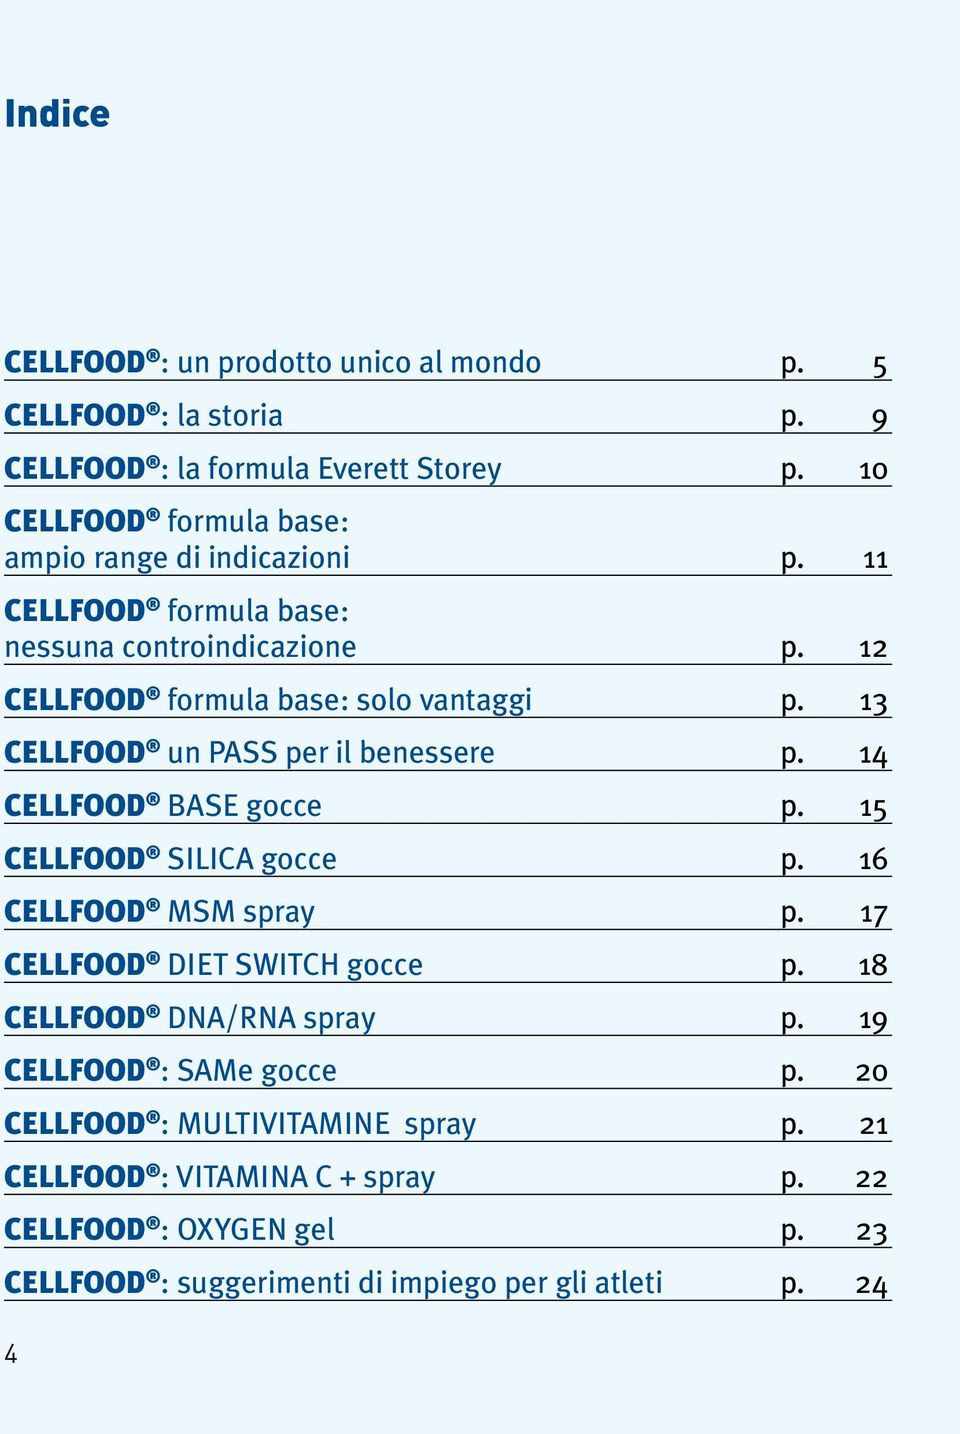 13 CELLFOOD un pass per il benessere p. 14 CELLFOOD base gocce p. 15 CELLFOOD silica gocce p. 16 CELLFOOD msm spray p. 17 CELLFOOD diet switch gocce p.